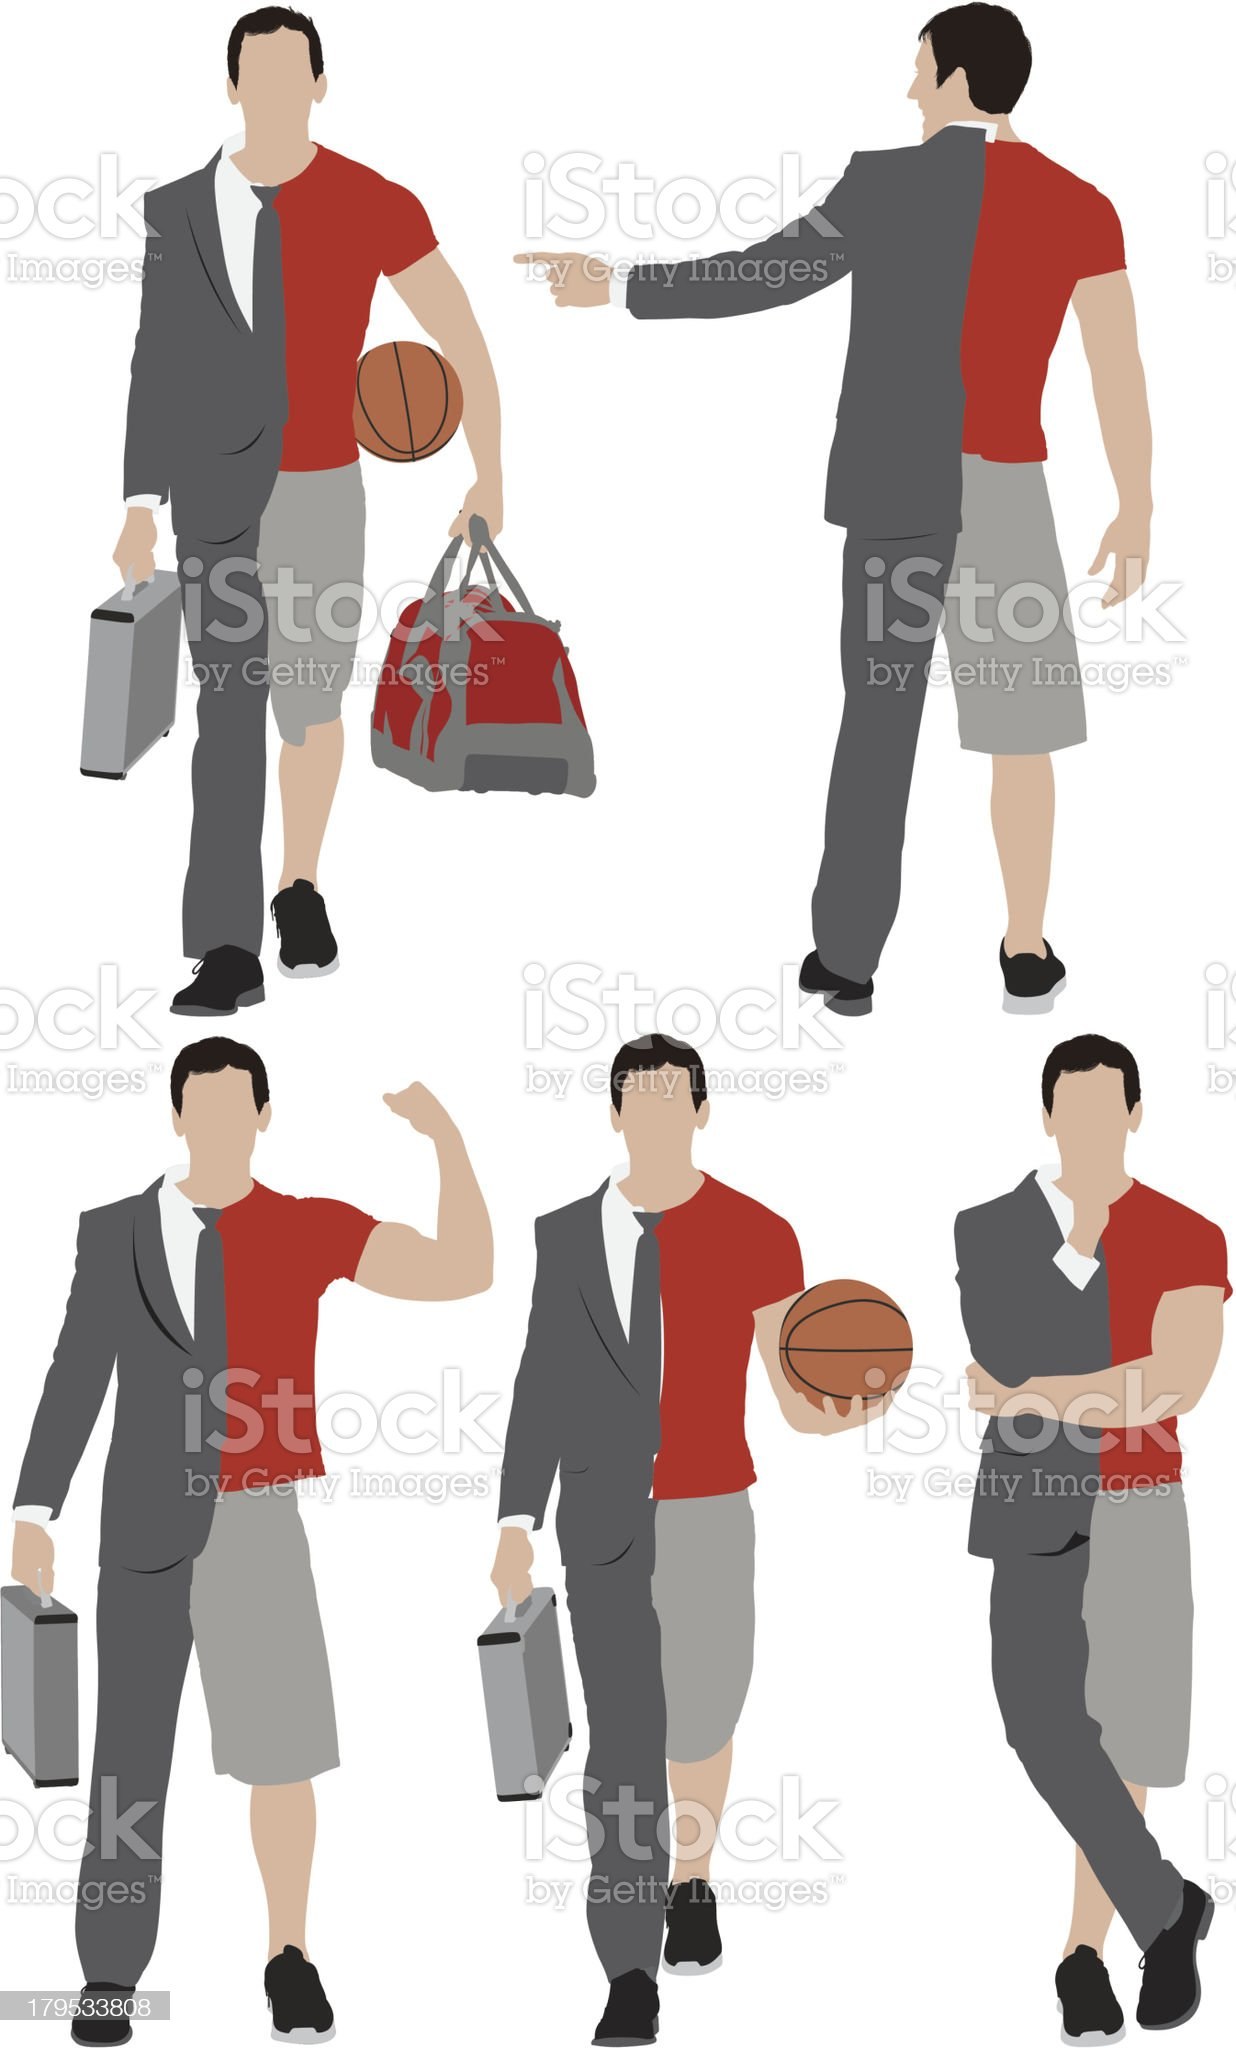 Illustration of a man with split personality royalty-free stock vector art